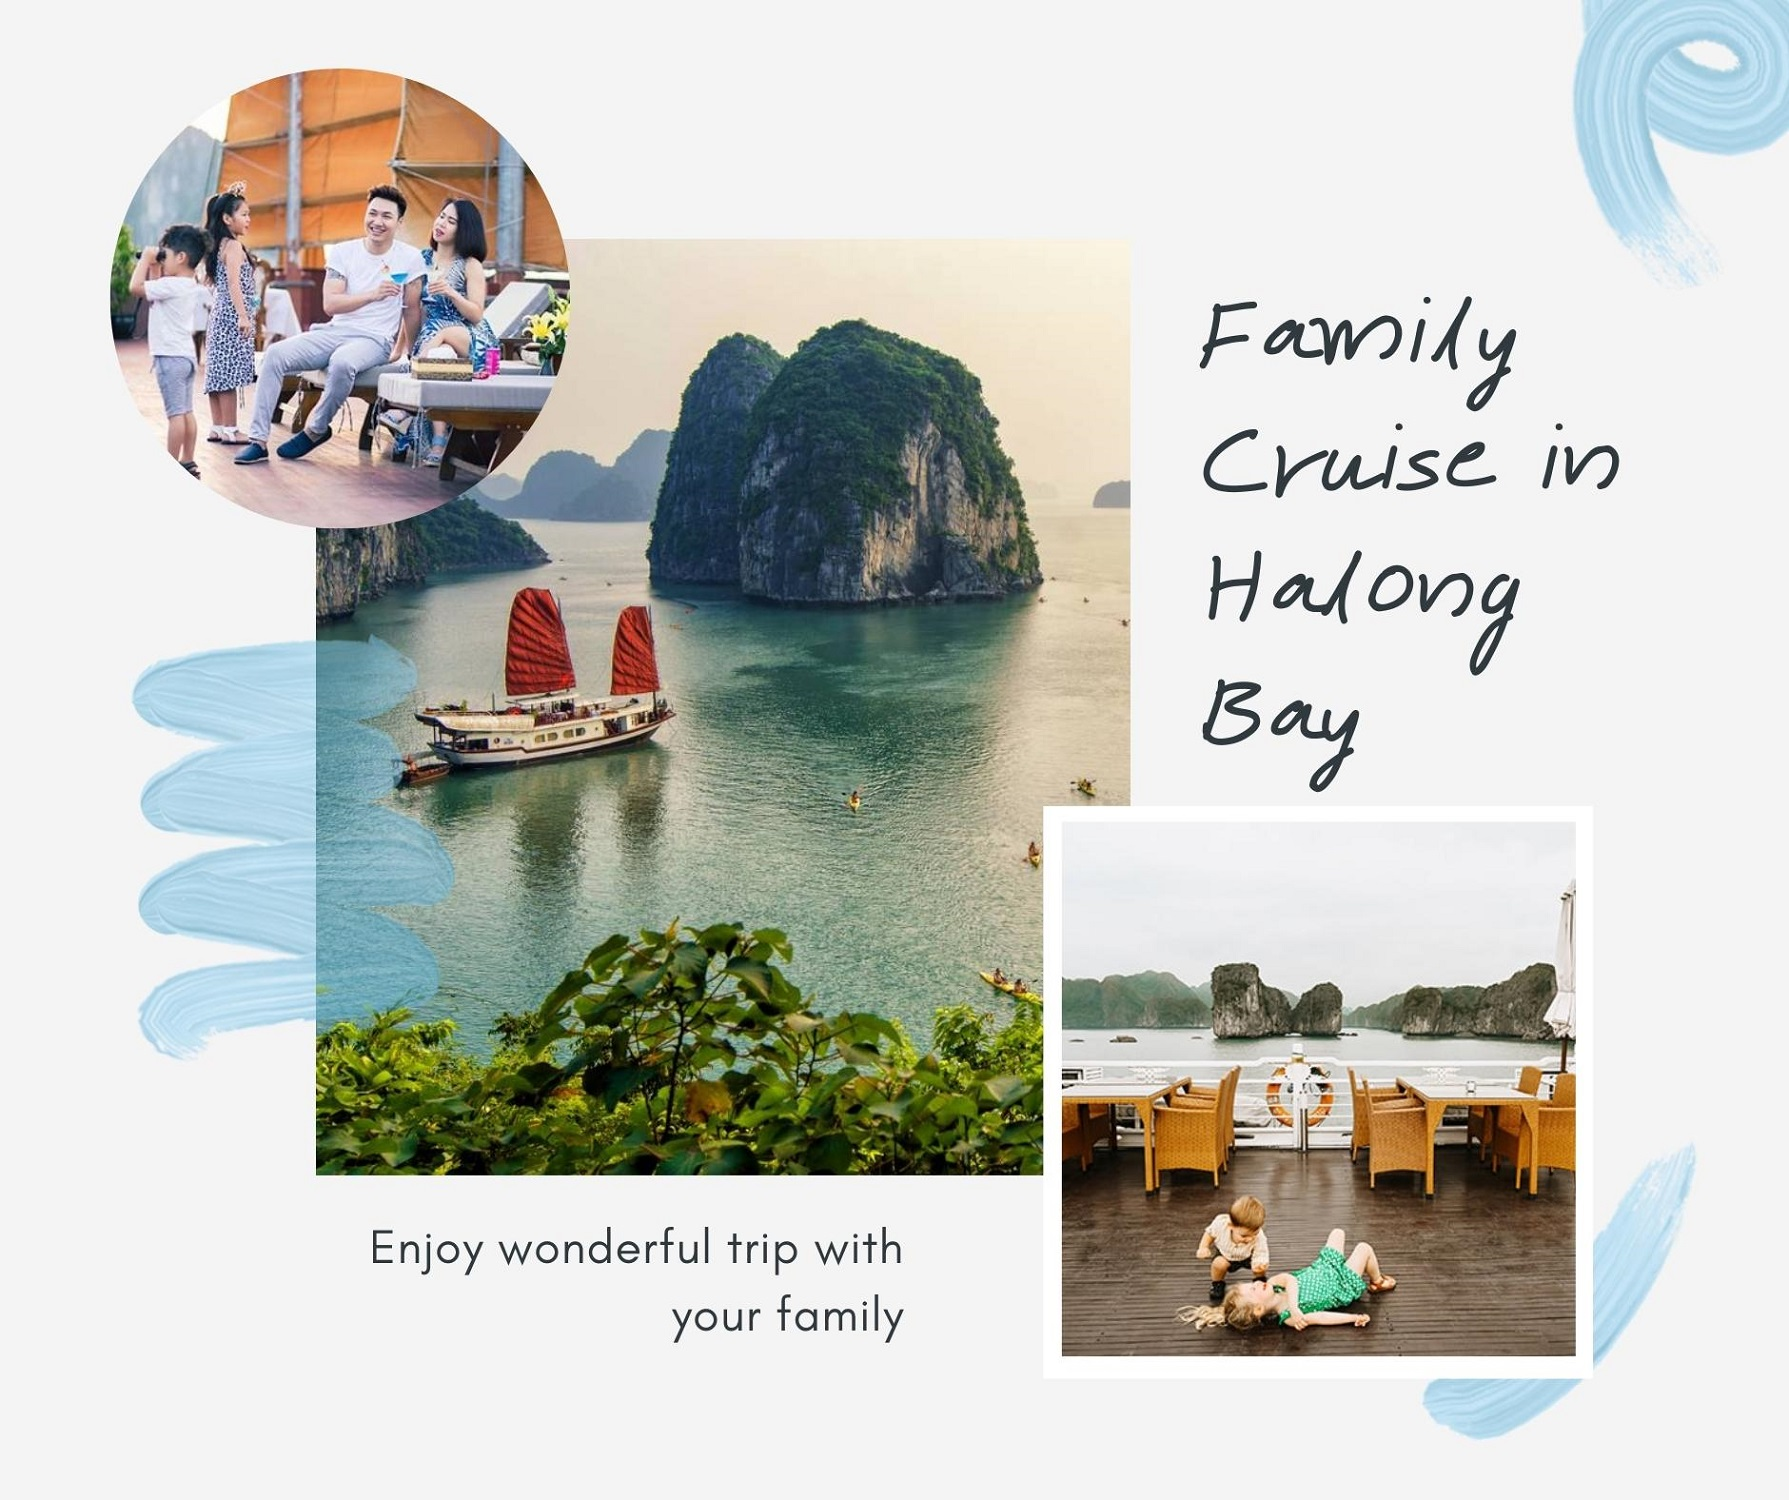 Halong Bay Family Cruise